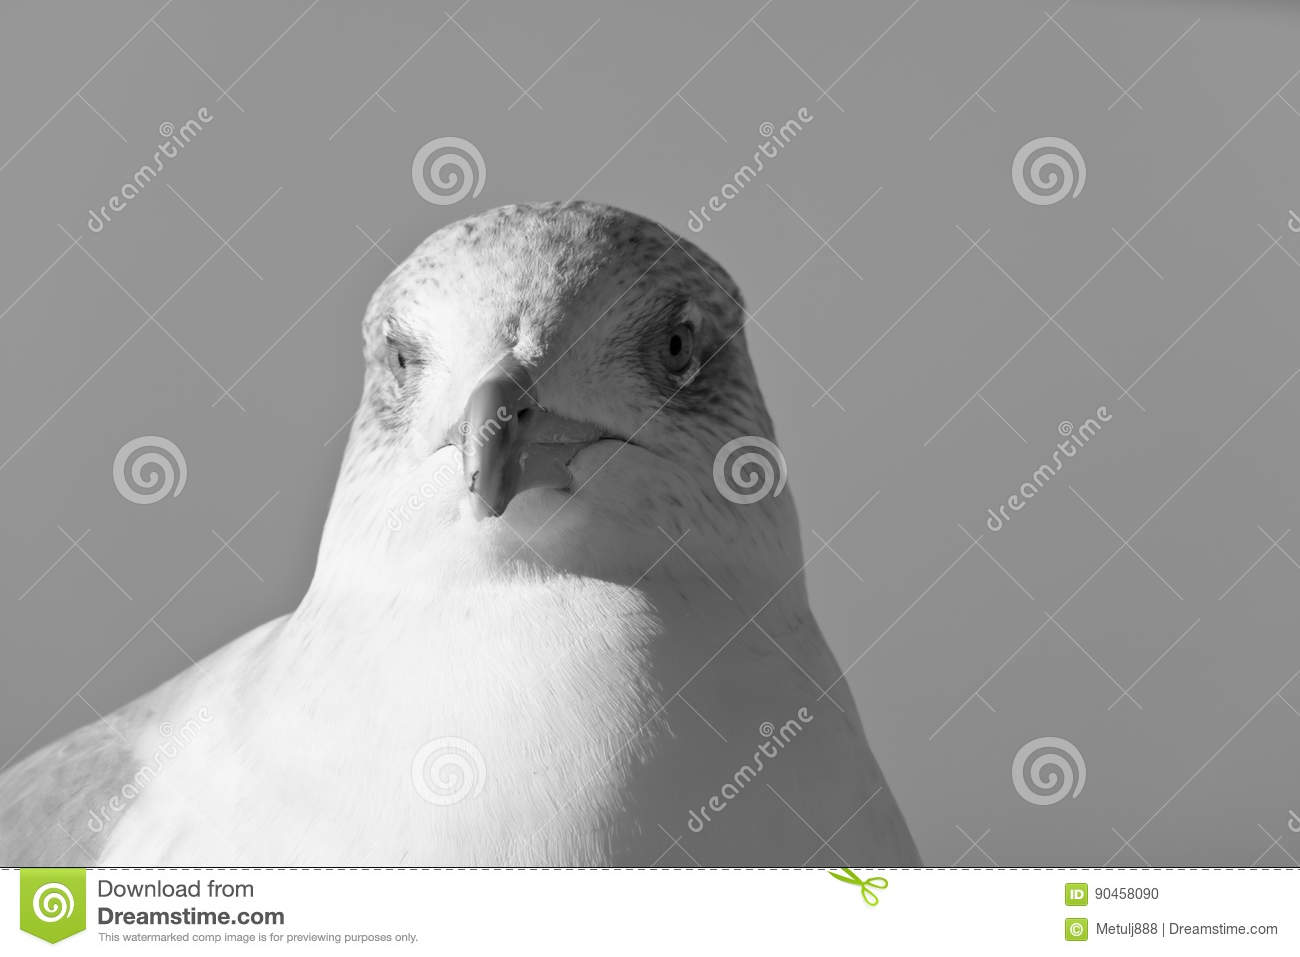 Cute seagull head in black and white